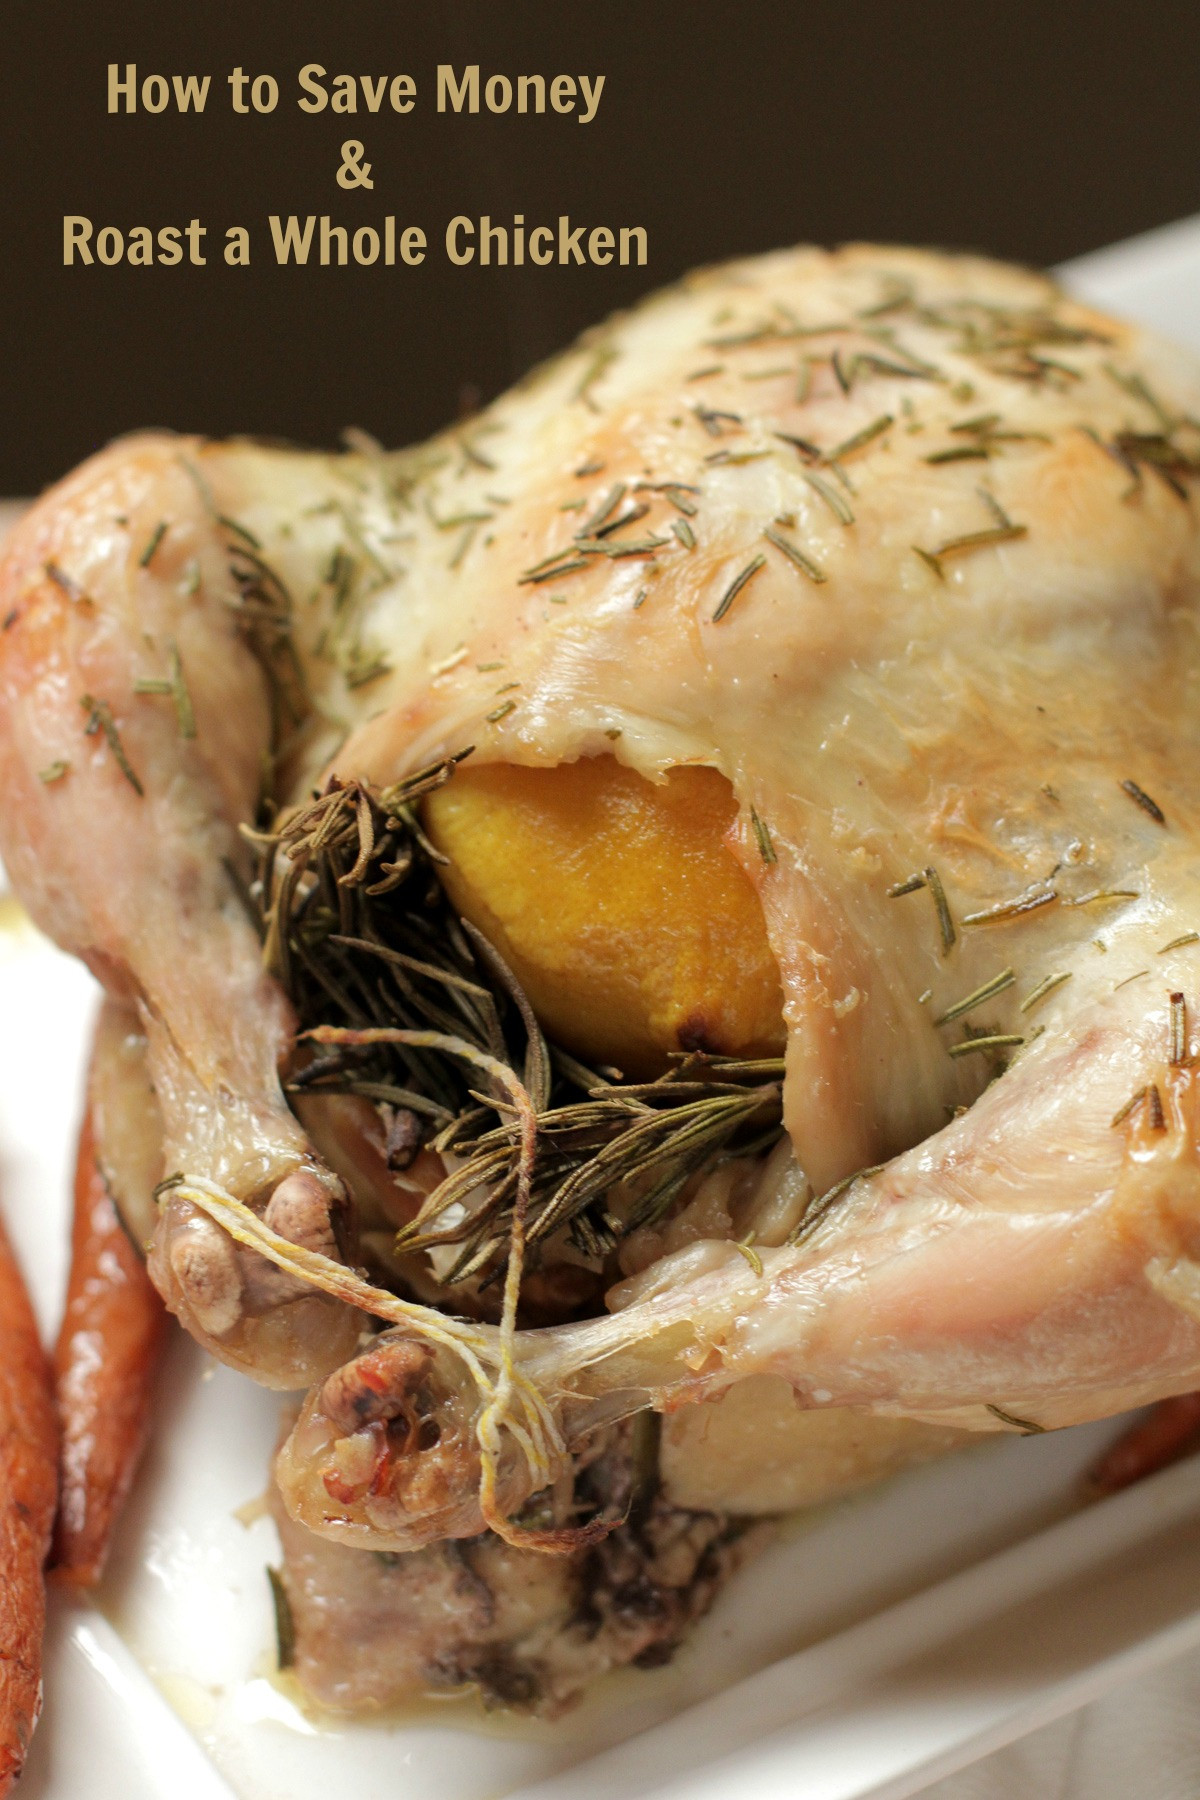 Roast A Whole Chicken  Roast a Whole Chicken & Save Money Live Simply